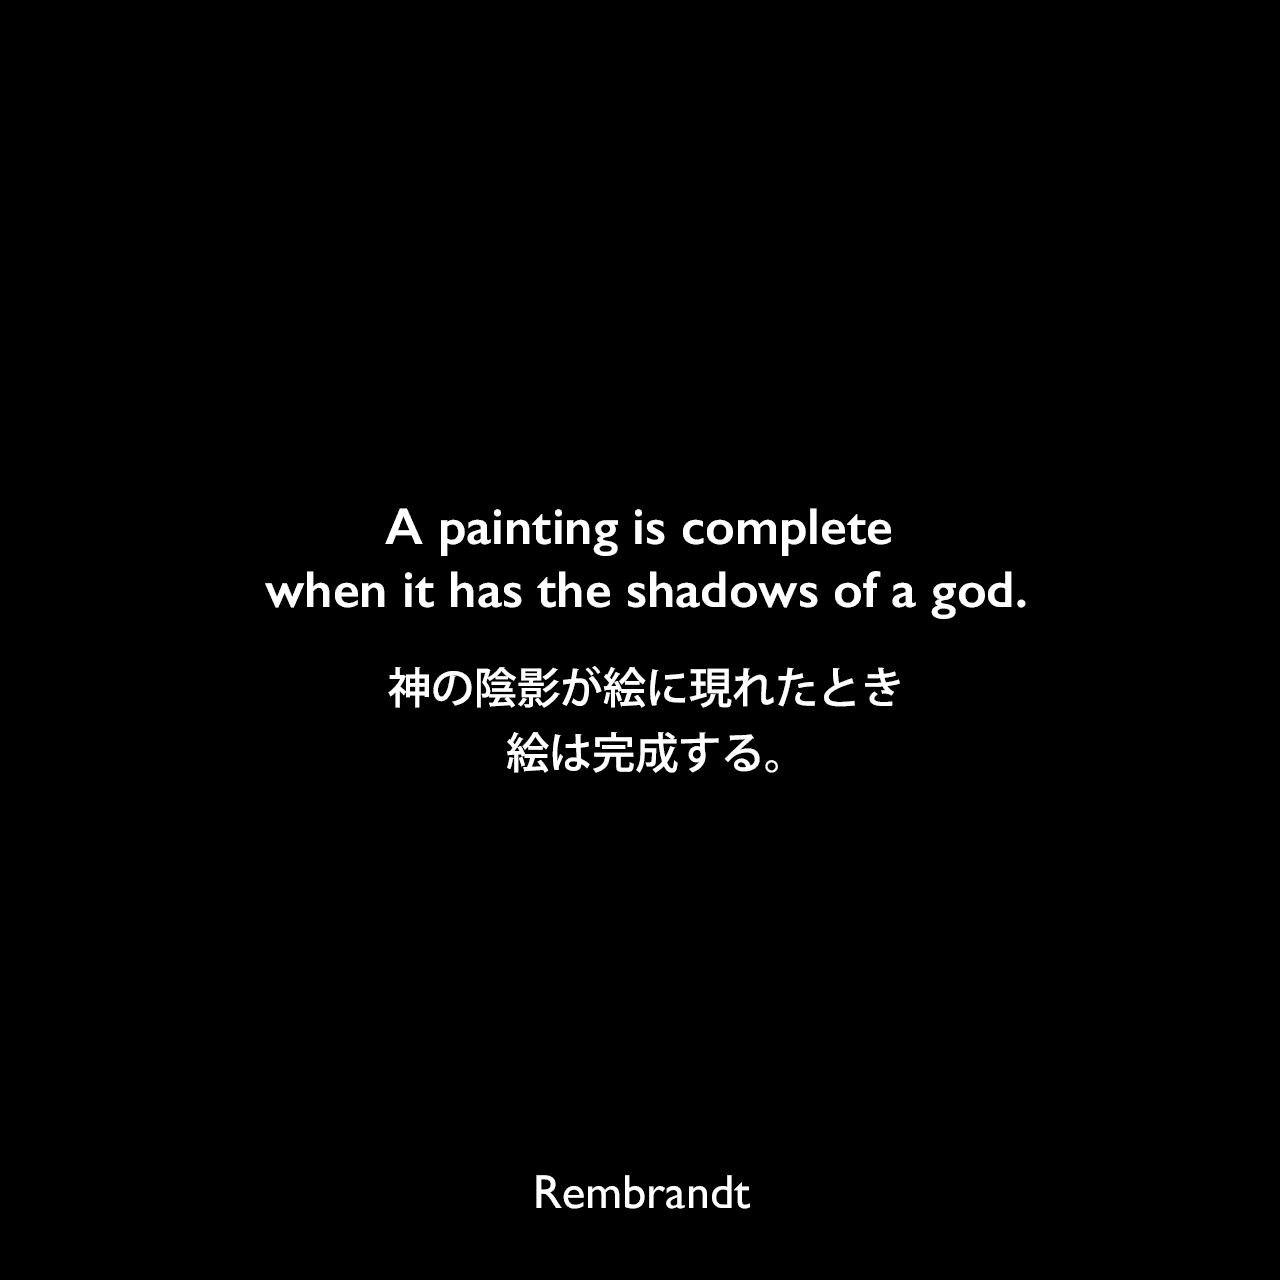 A painting is complete when it has the shadows of a god.神の陰影が絵に現れたとき、絵は完成する。Rembrandt